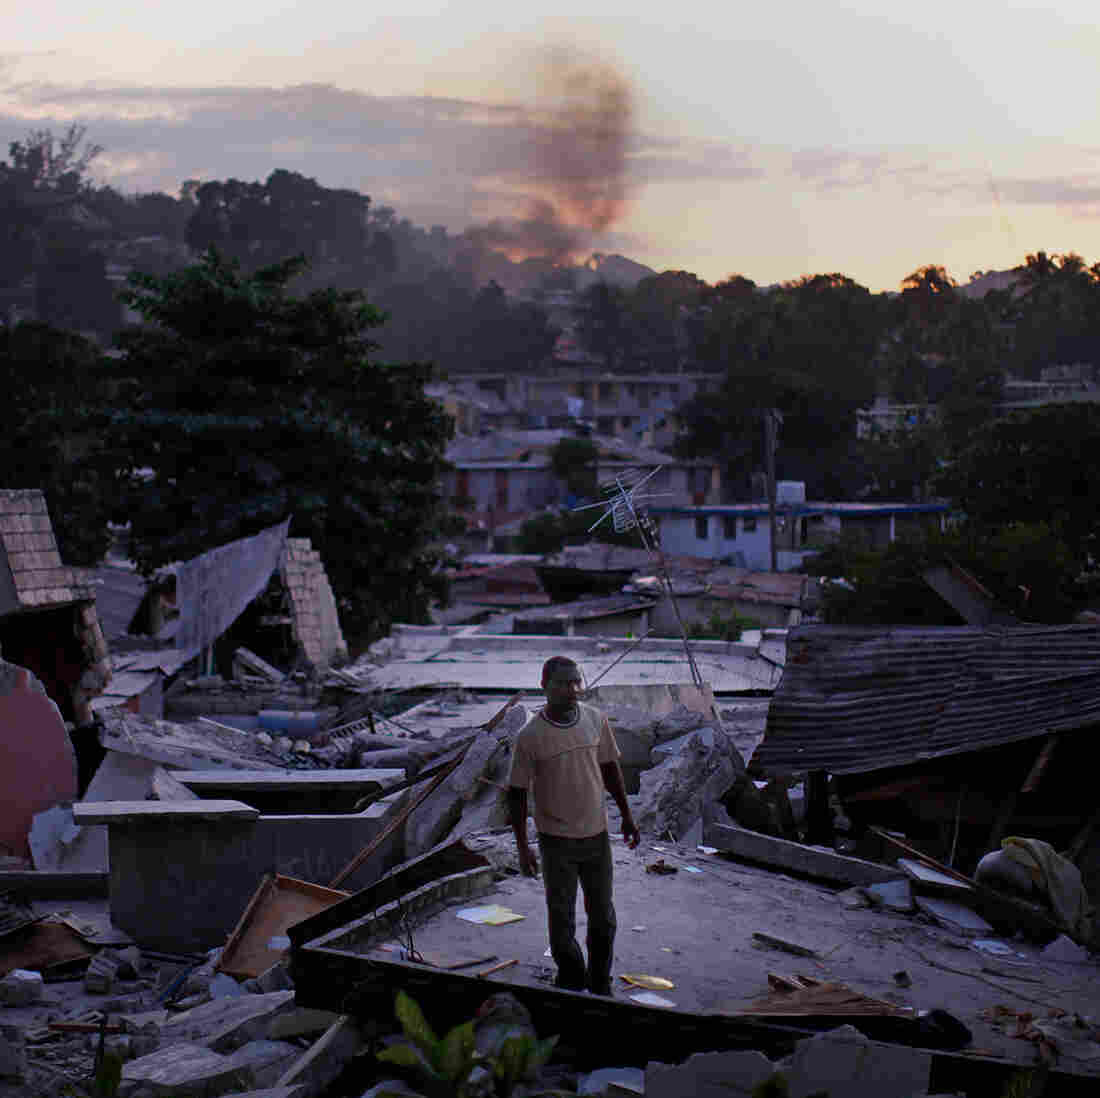 Behind The Story: What Made NPR Look Into Red Cross Efforts In Haiti?